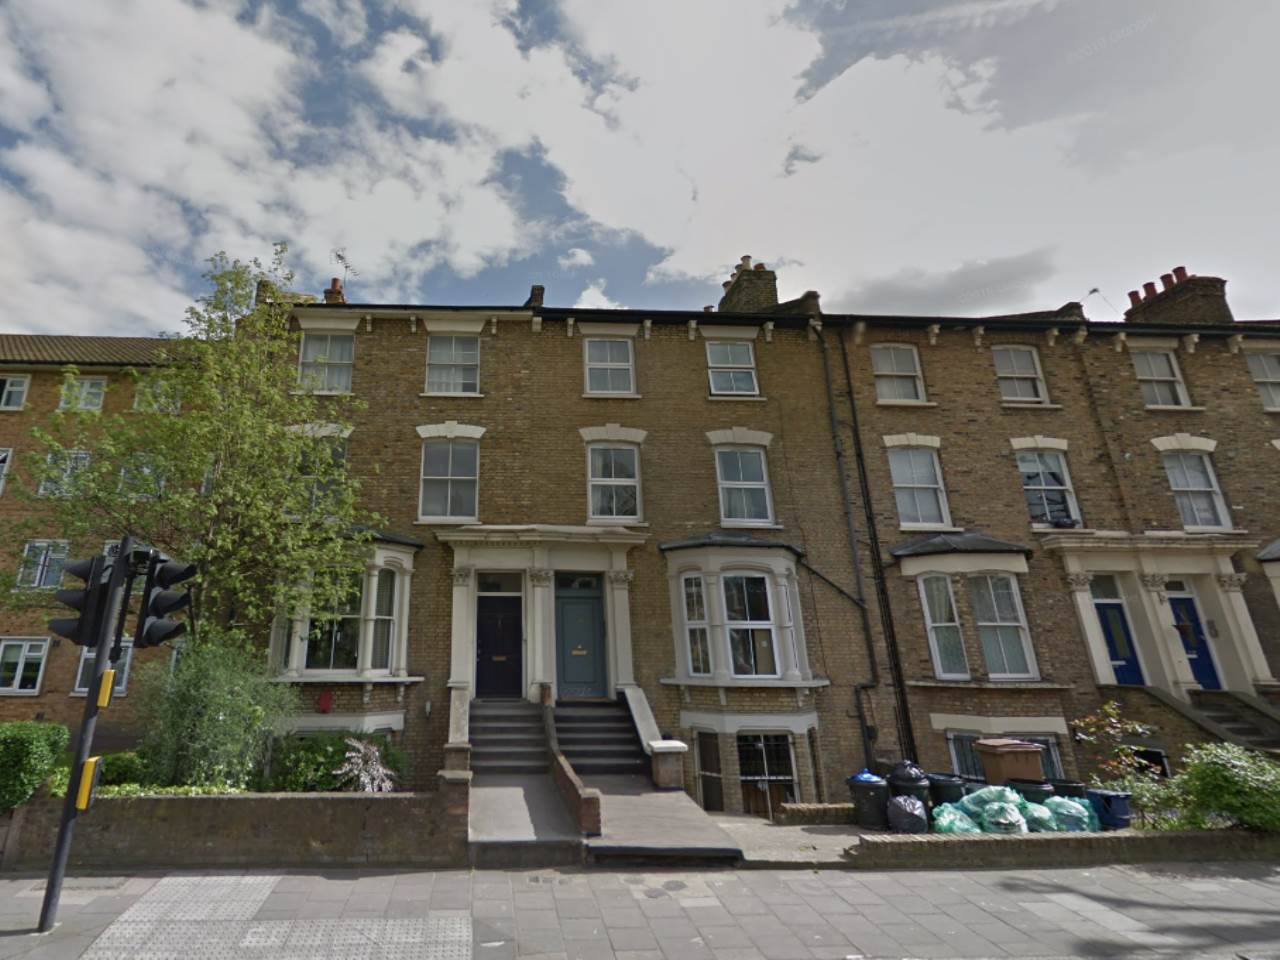 2 bed flat to rent in Hackney, E8